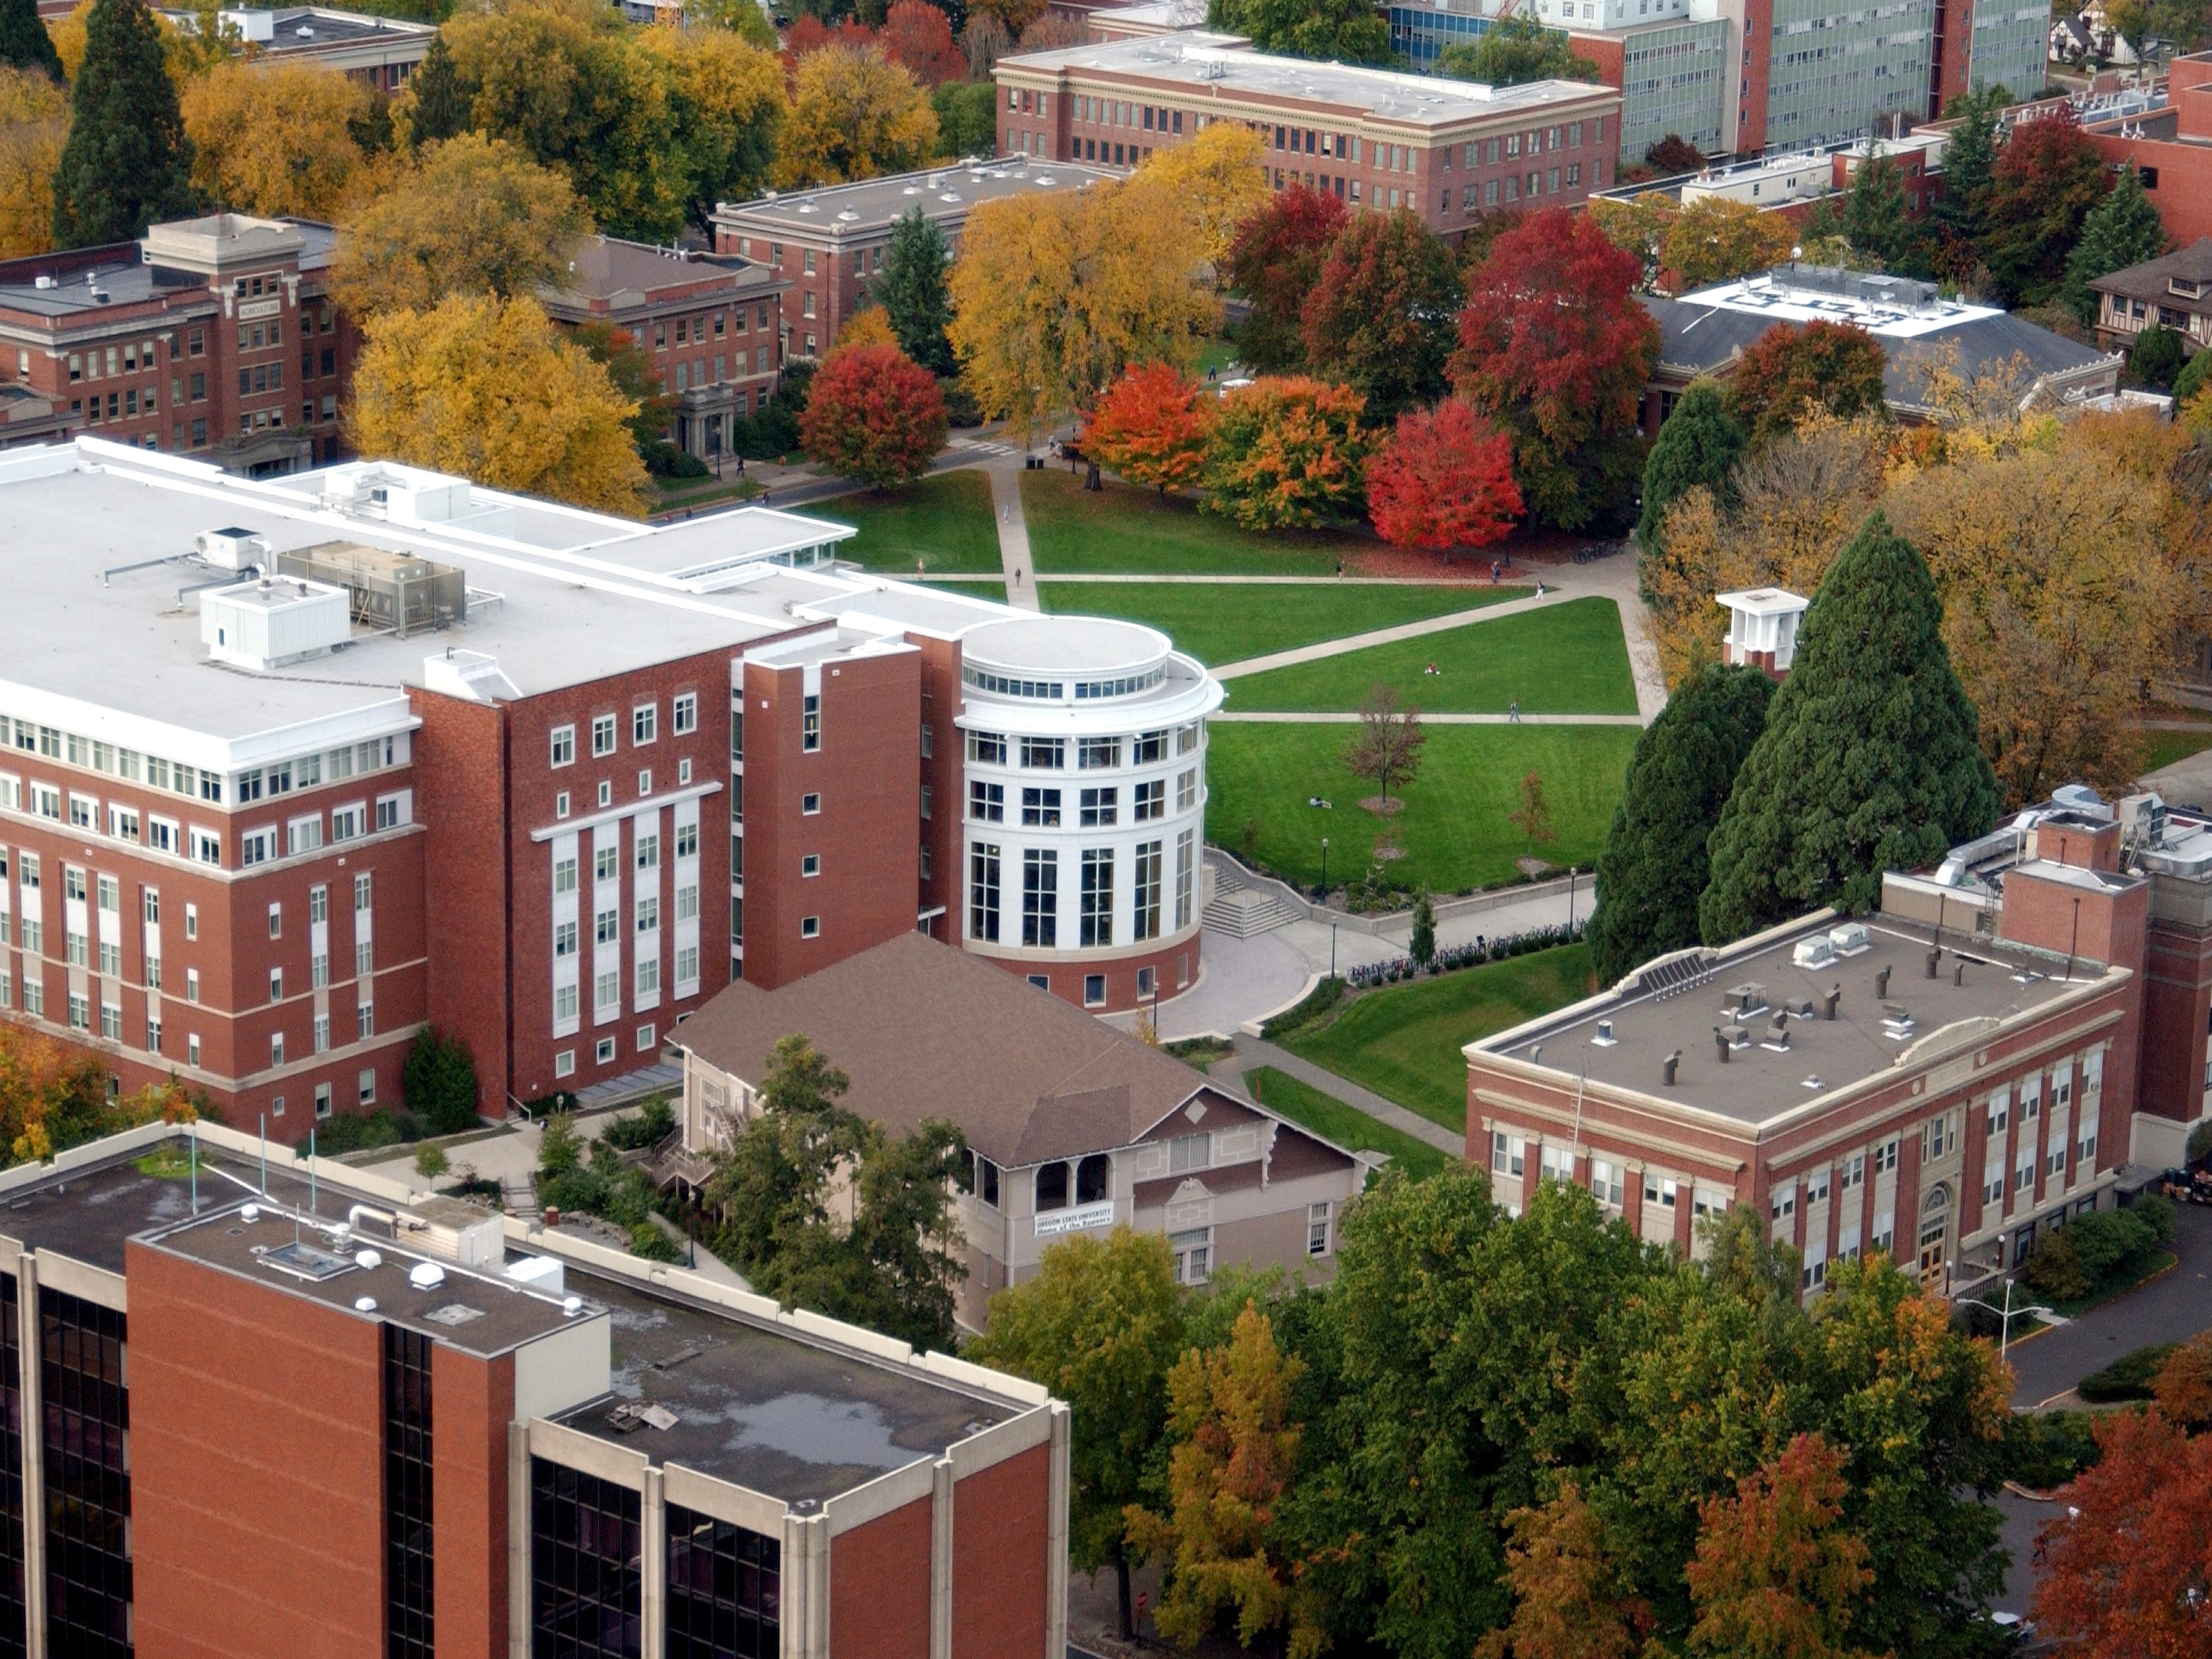 Great location for visiting students at Oregon State University